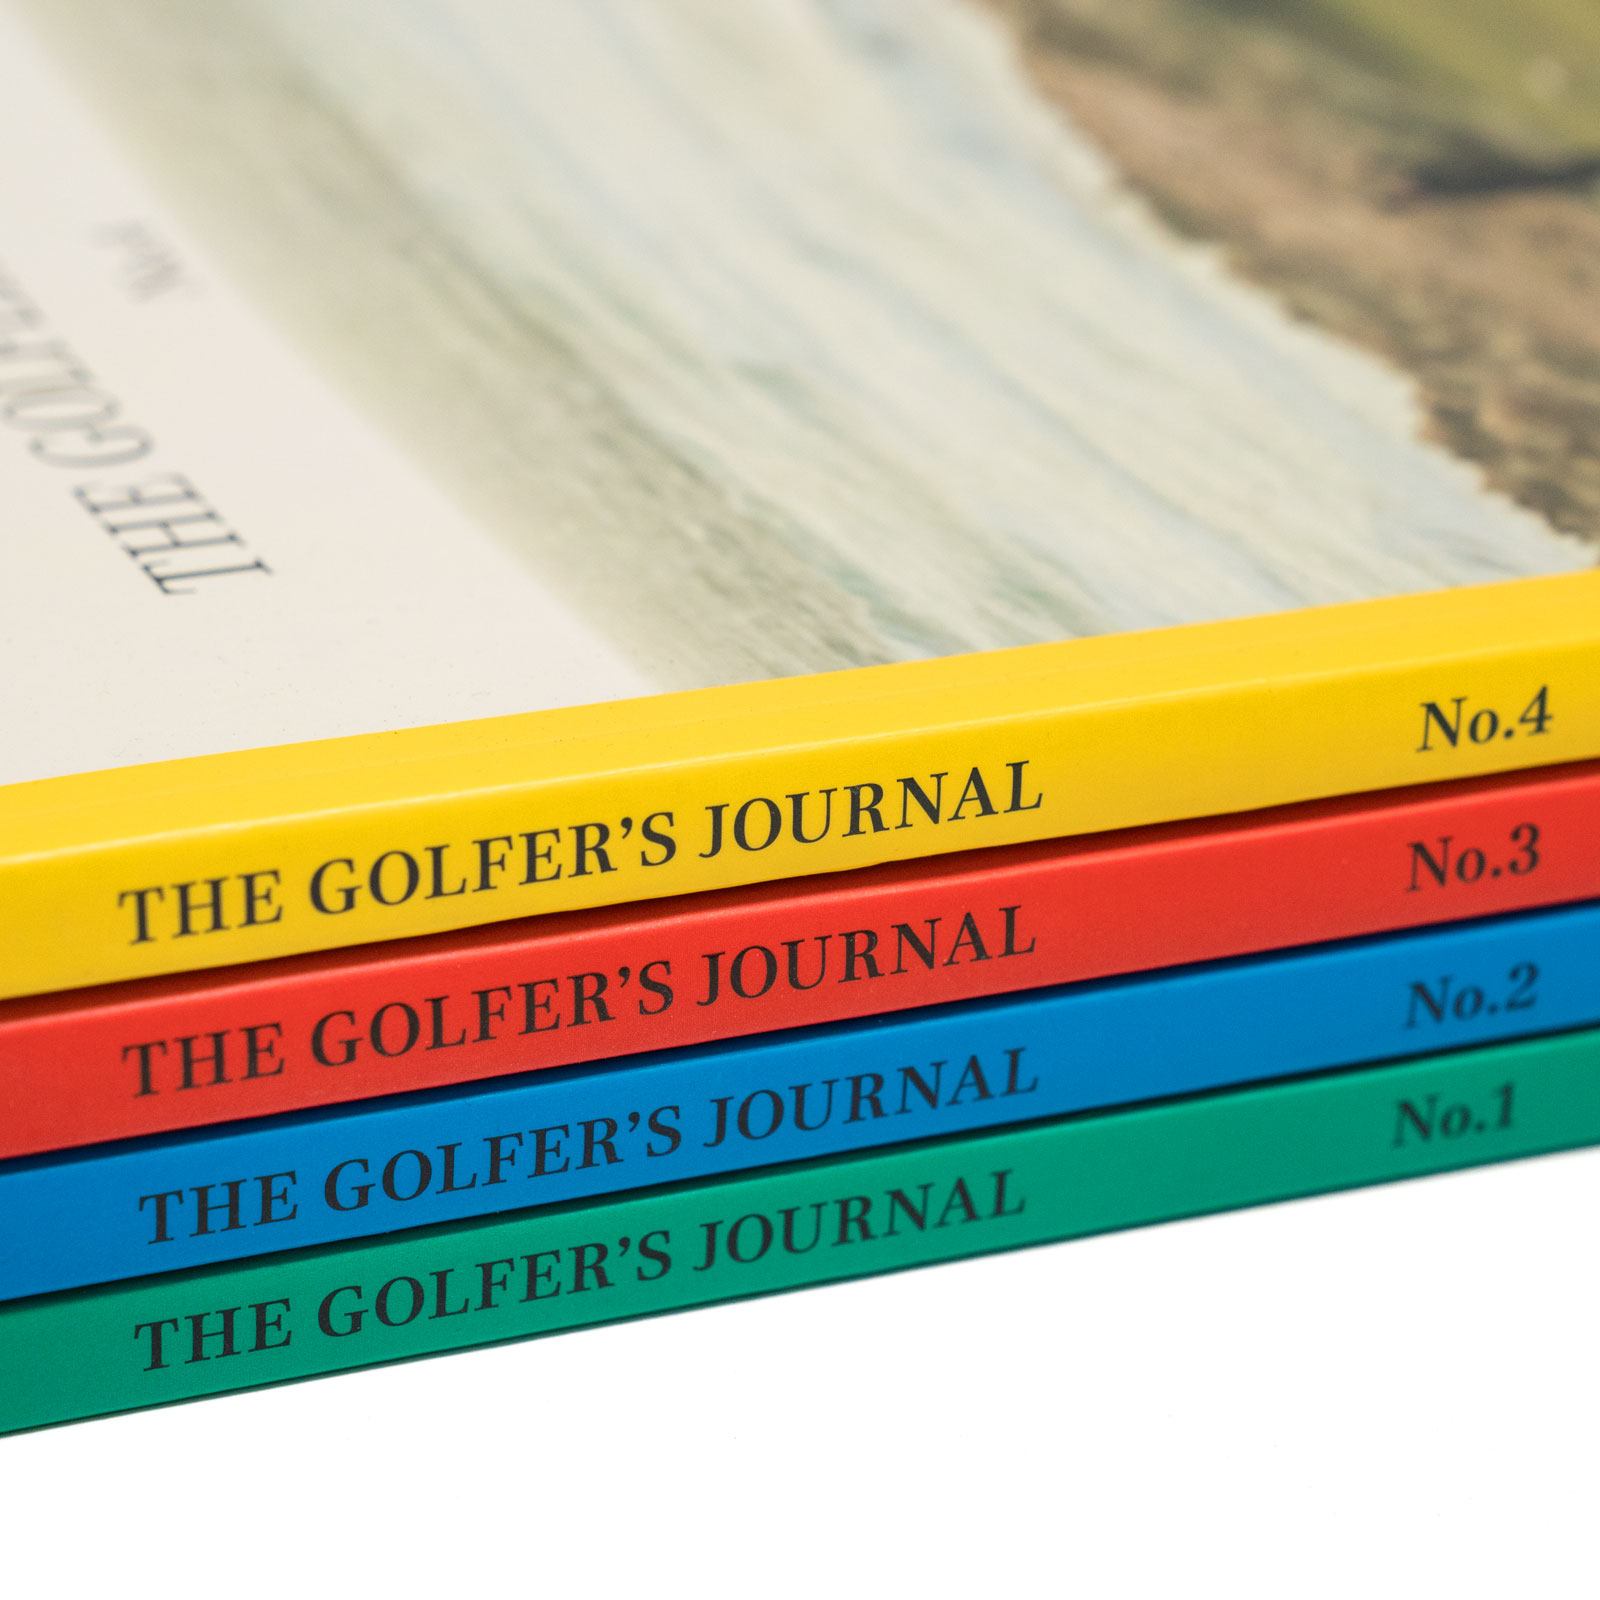 The Golfer's Journal 1-4